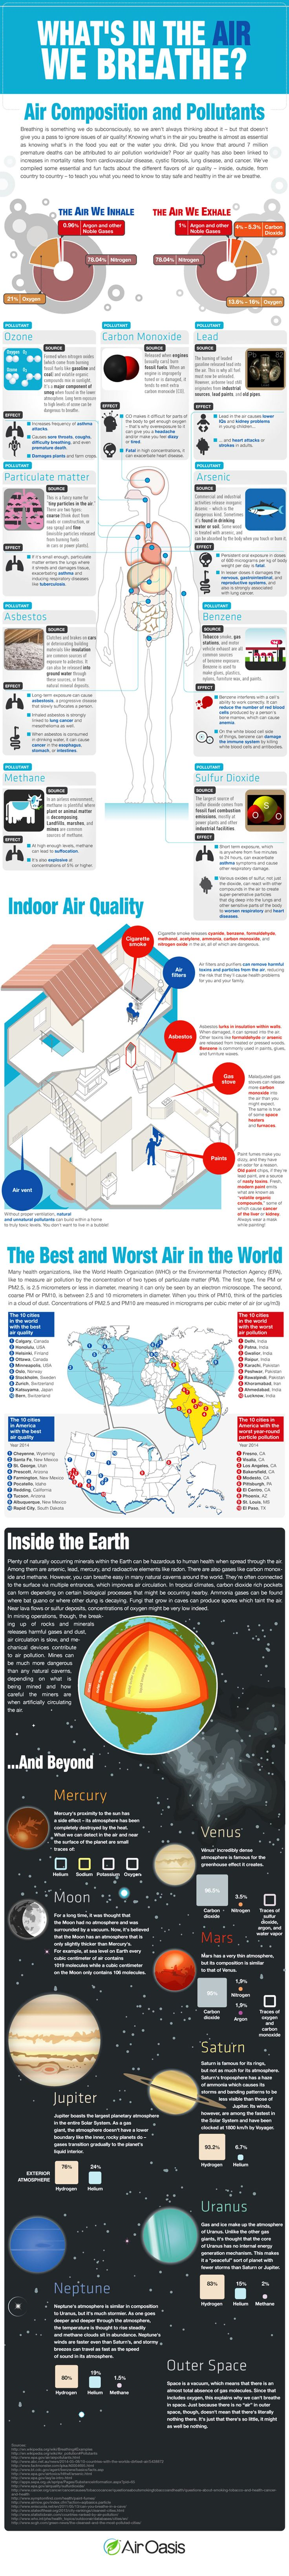 Composition of Air We Breathe Infographic. Topic: air pollution, environmental